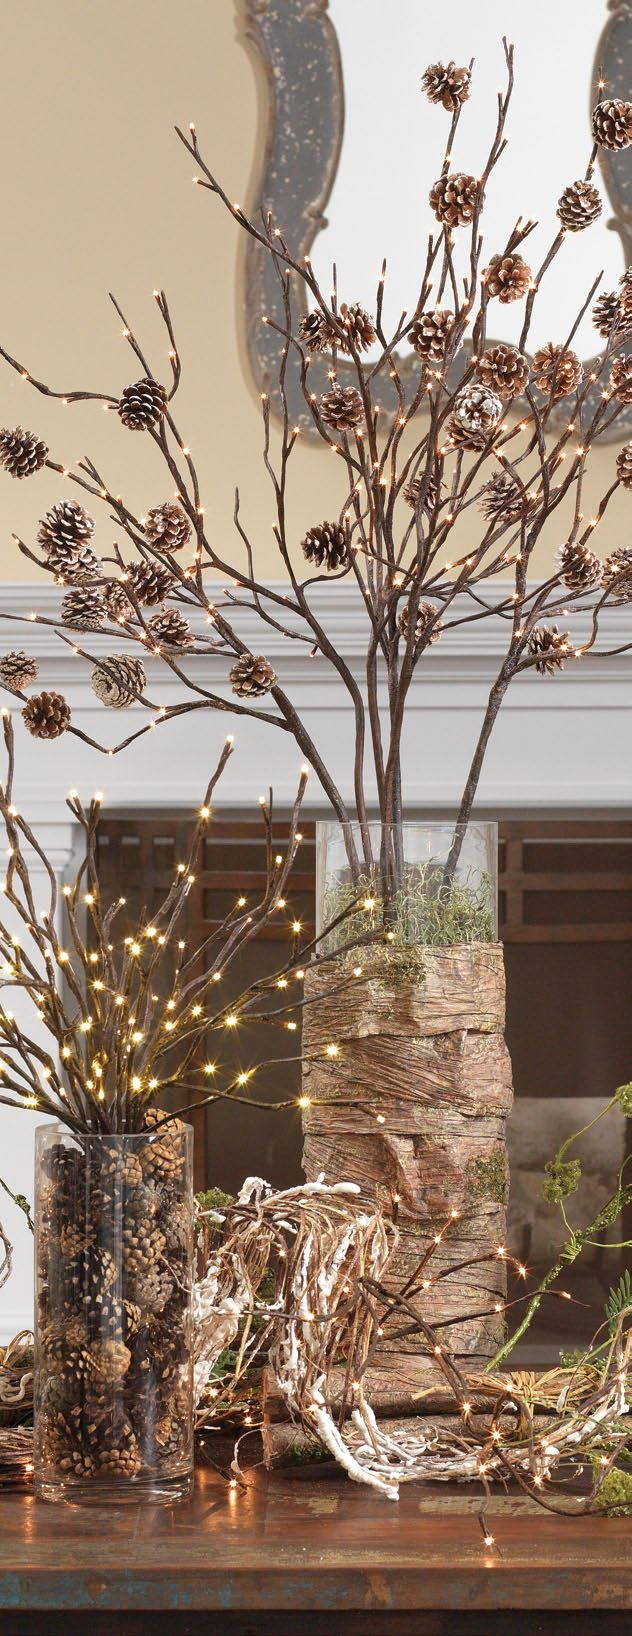 Lighted-branches-vases ❤❦♪♫ I really like this!